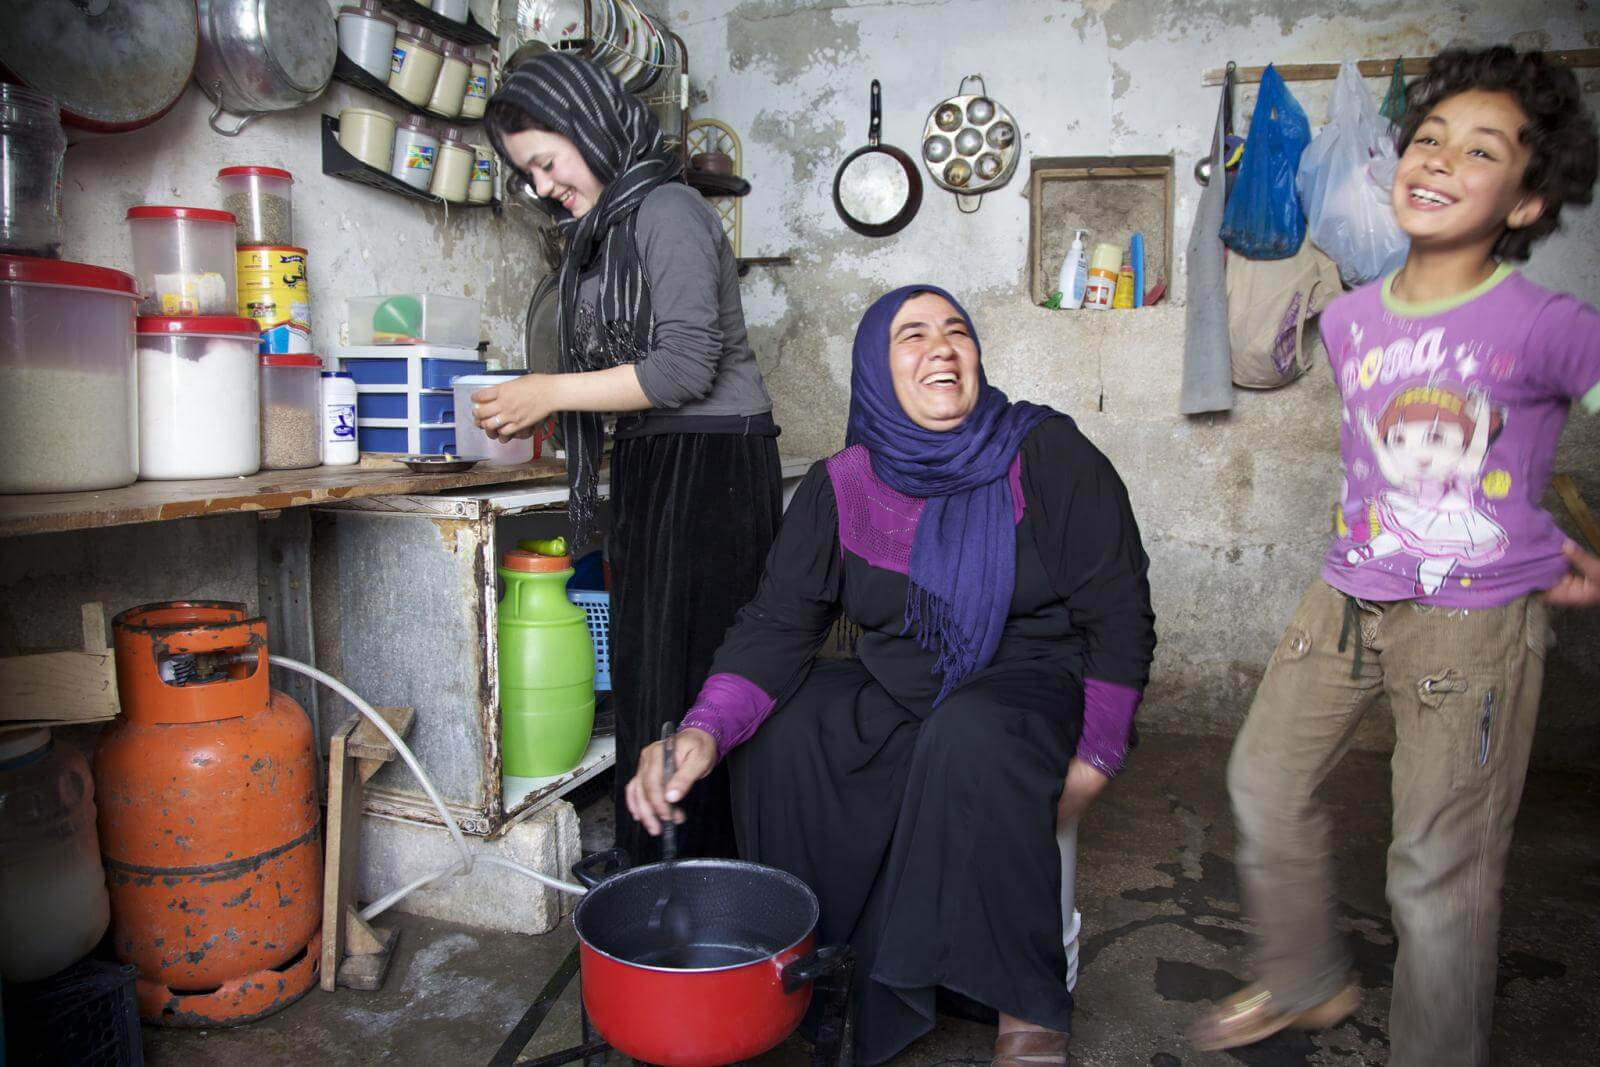 A family laughing and cooking in Jordan